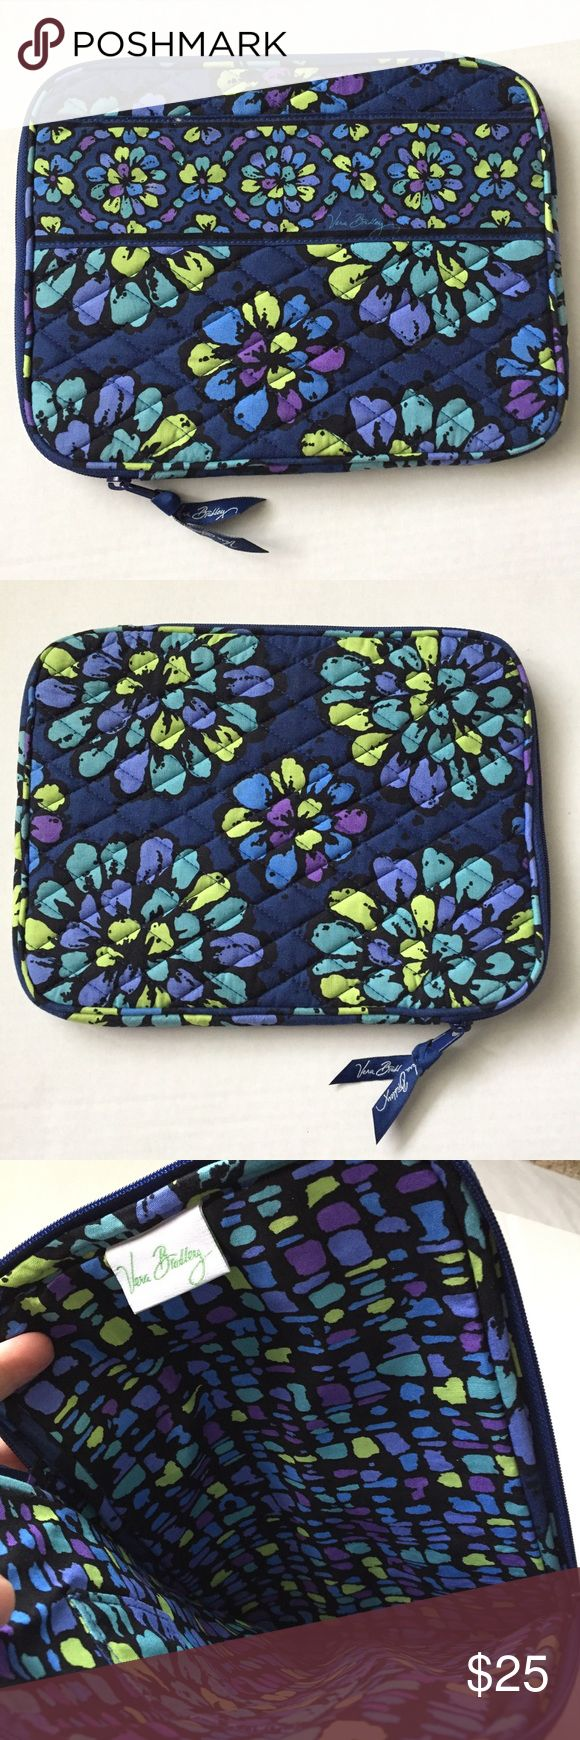 Vera Bradley tablet case/sleeve! New! Vera Bradley tablet case! Perfect for iPads! New without tags! Zipper closure and foam padding! Great Blue pattern! 10.5x8 inches! Vera Bradley Accessories Tablet Cases